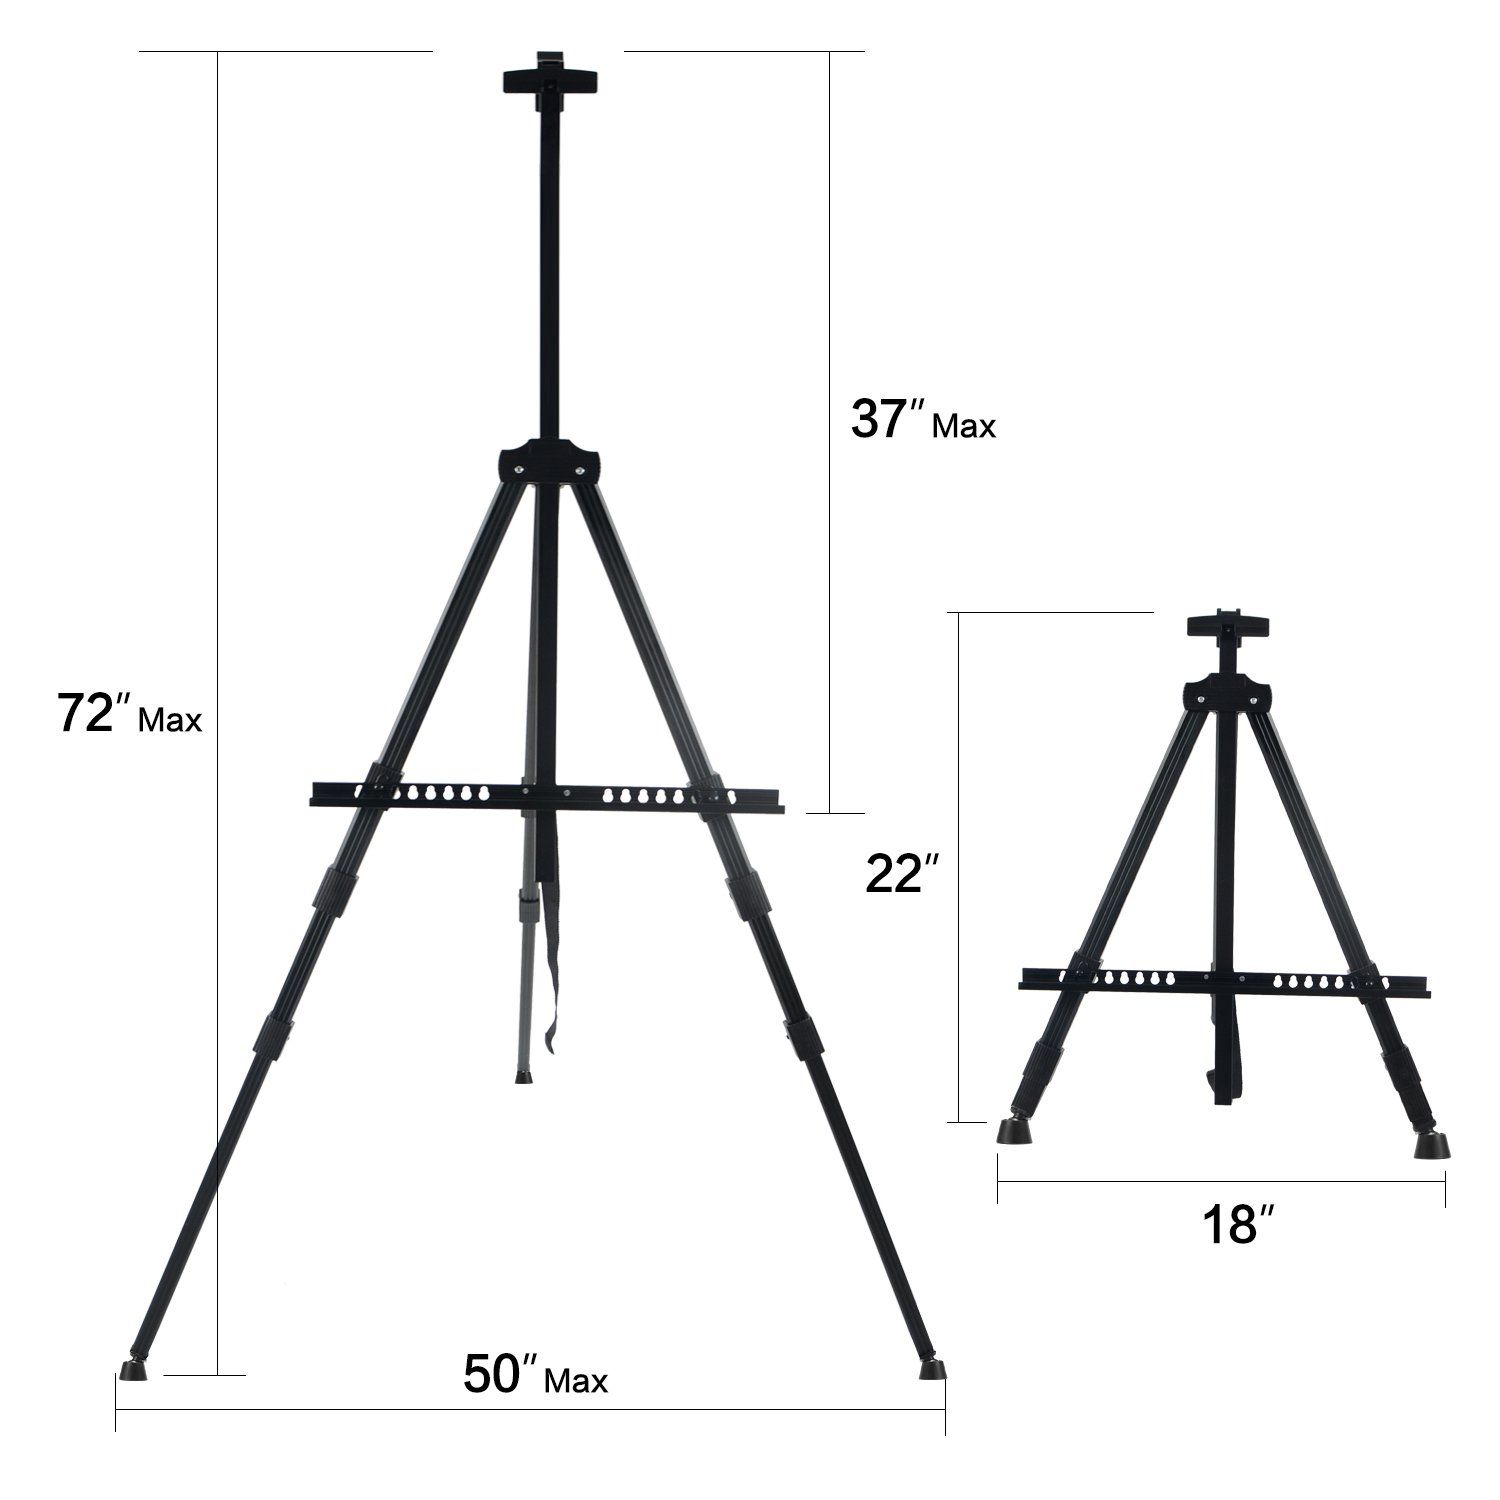 """Black Drawing and Display with Bag Extra Sturdy for Table-Top//Floor Painting Aluminum Metal Tripod Art Easel Adjustable Height from 22-72/"""" T-SIGN 72 Tall Display Easel Stand"""